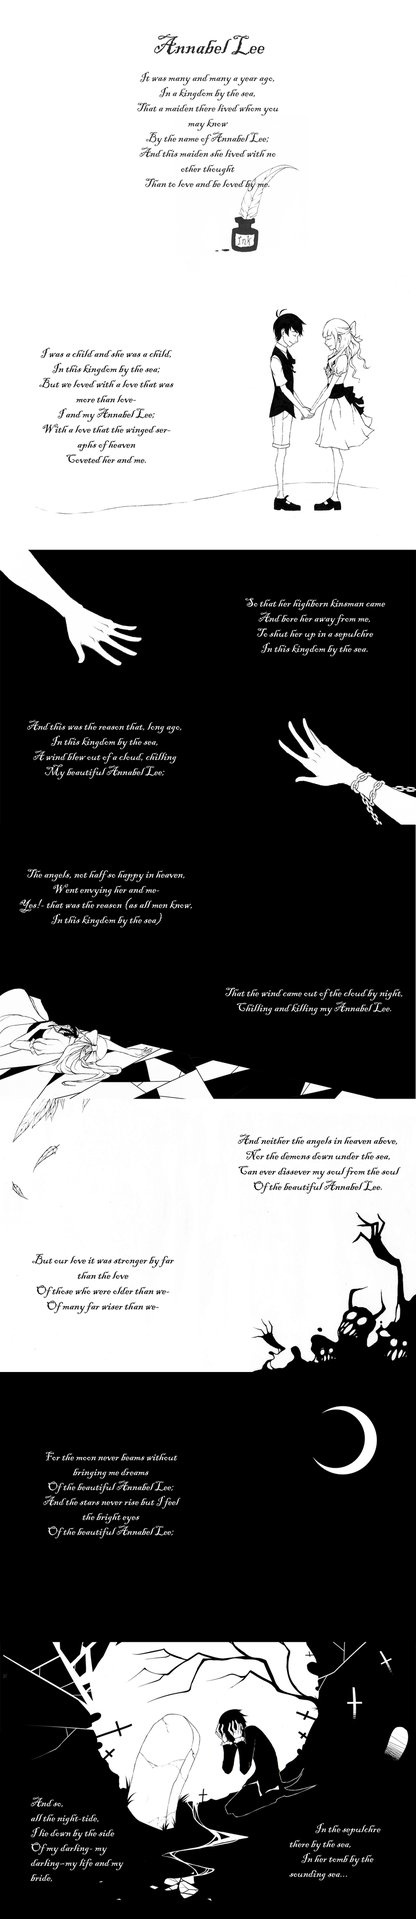 Annabel Lee - Edgar Allen Poe